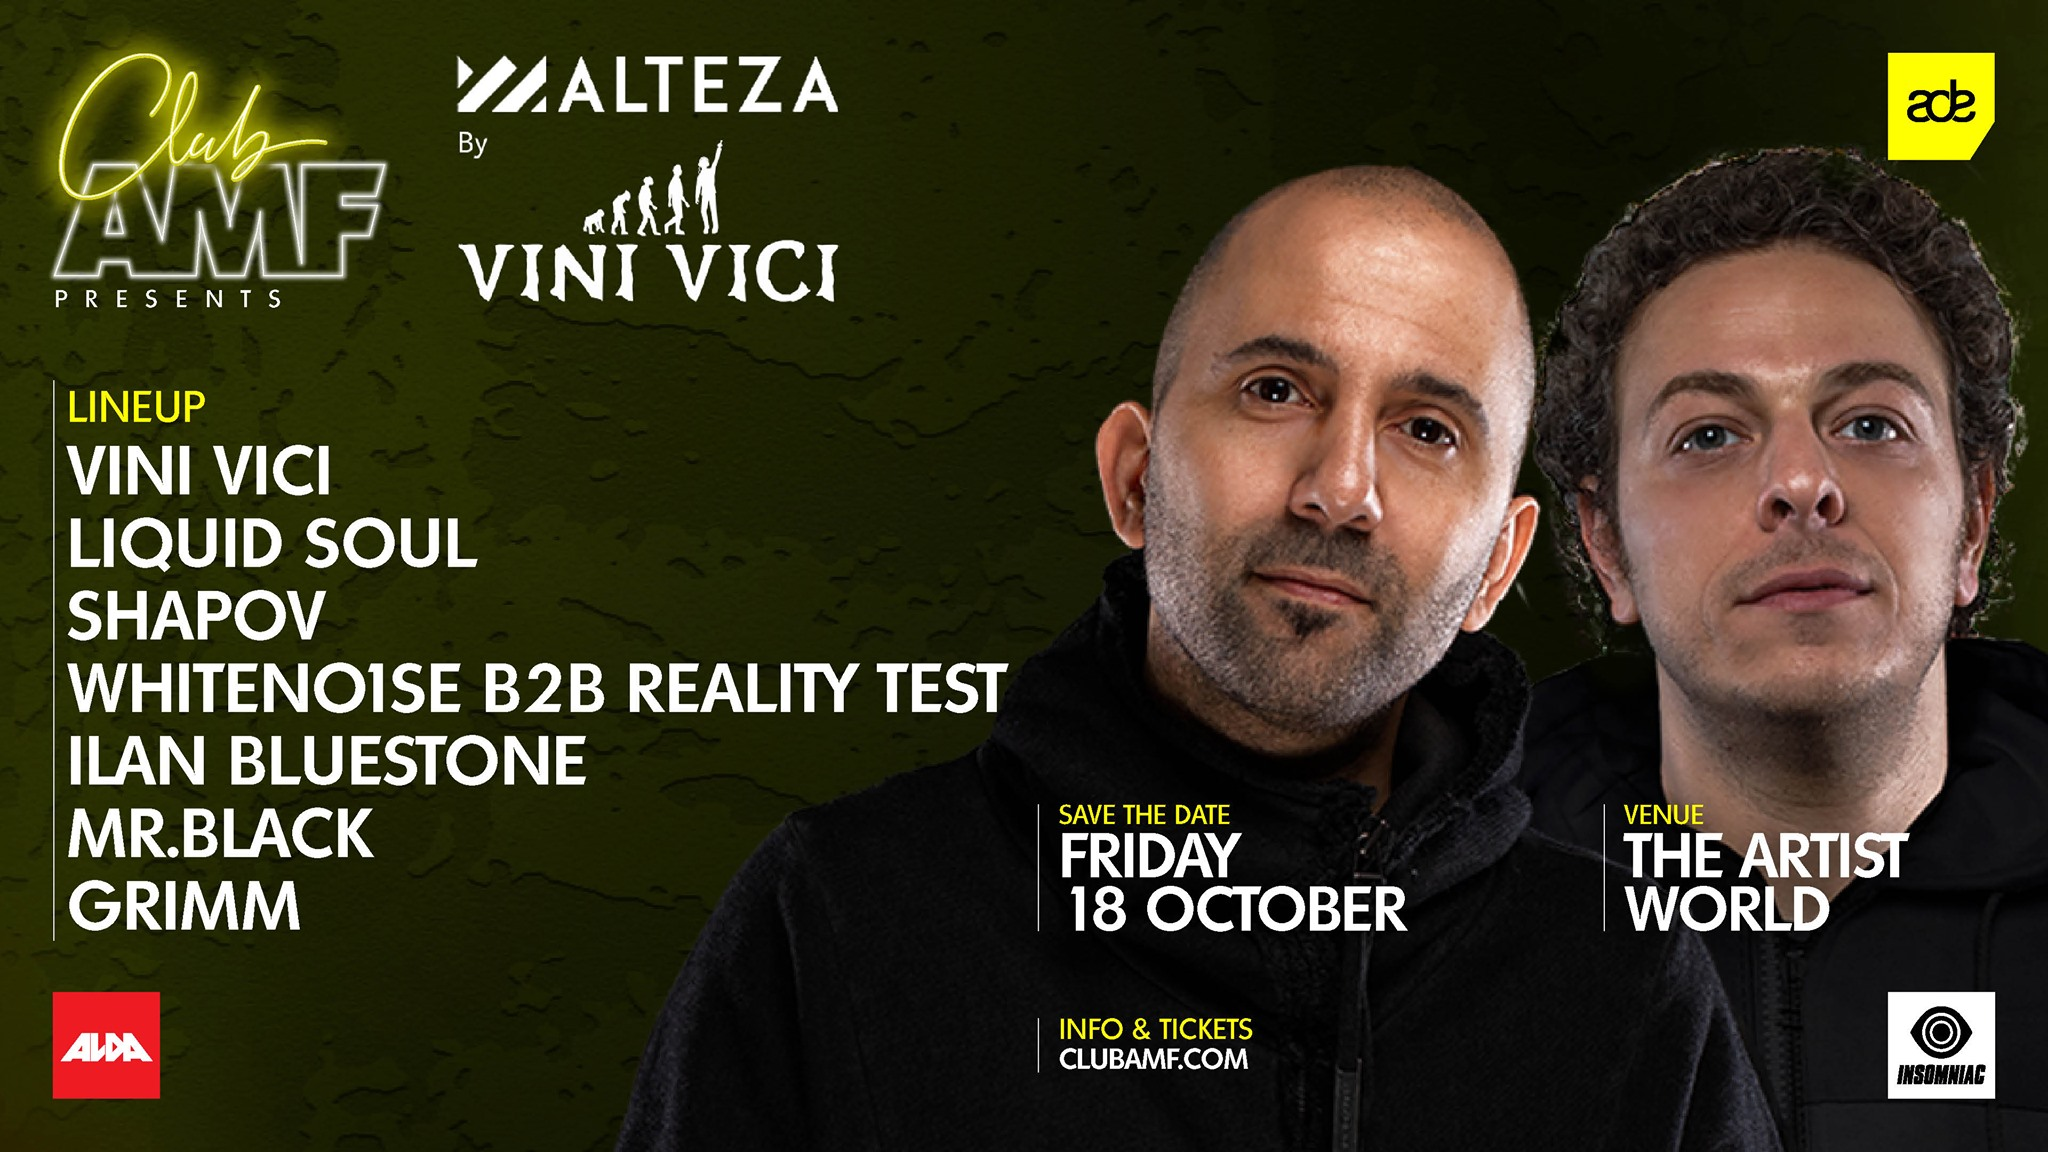 18.10.2019 Club AMF pres. Alteza by Vini Vici, Amsterdam